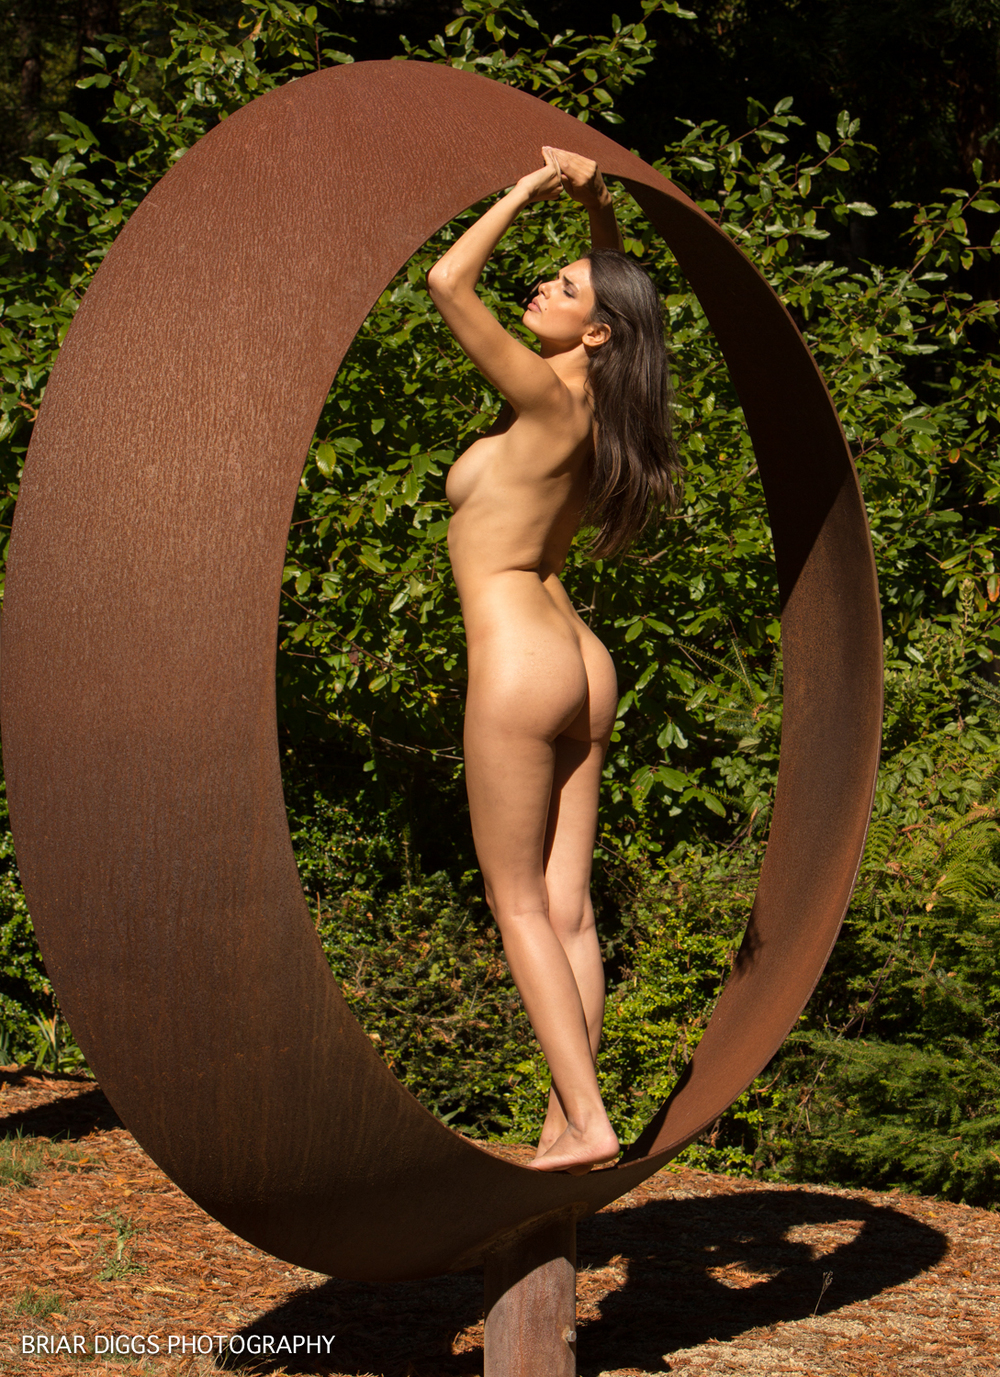 MODELS ART NUDES (COLOR)-14.jpg